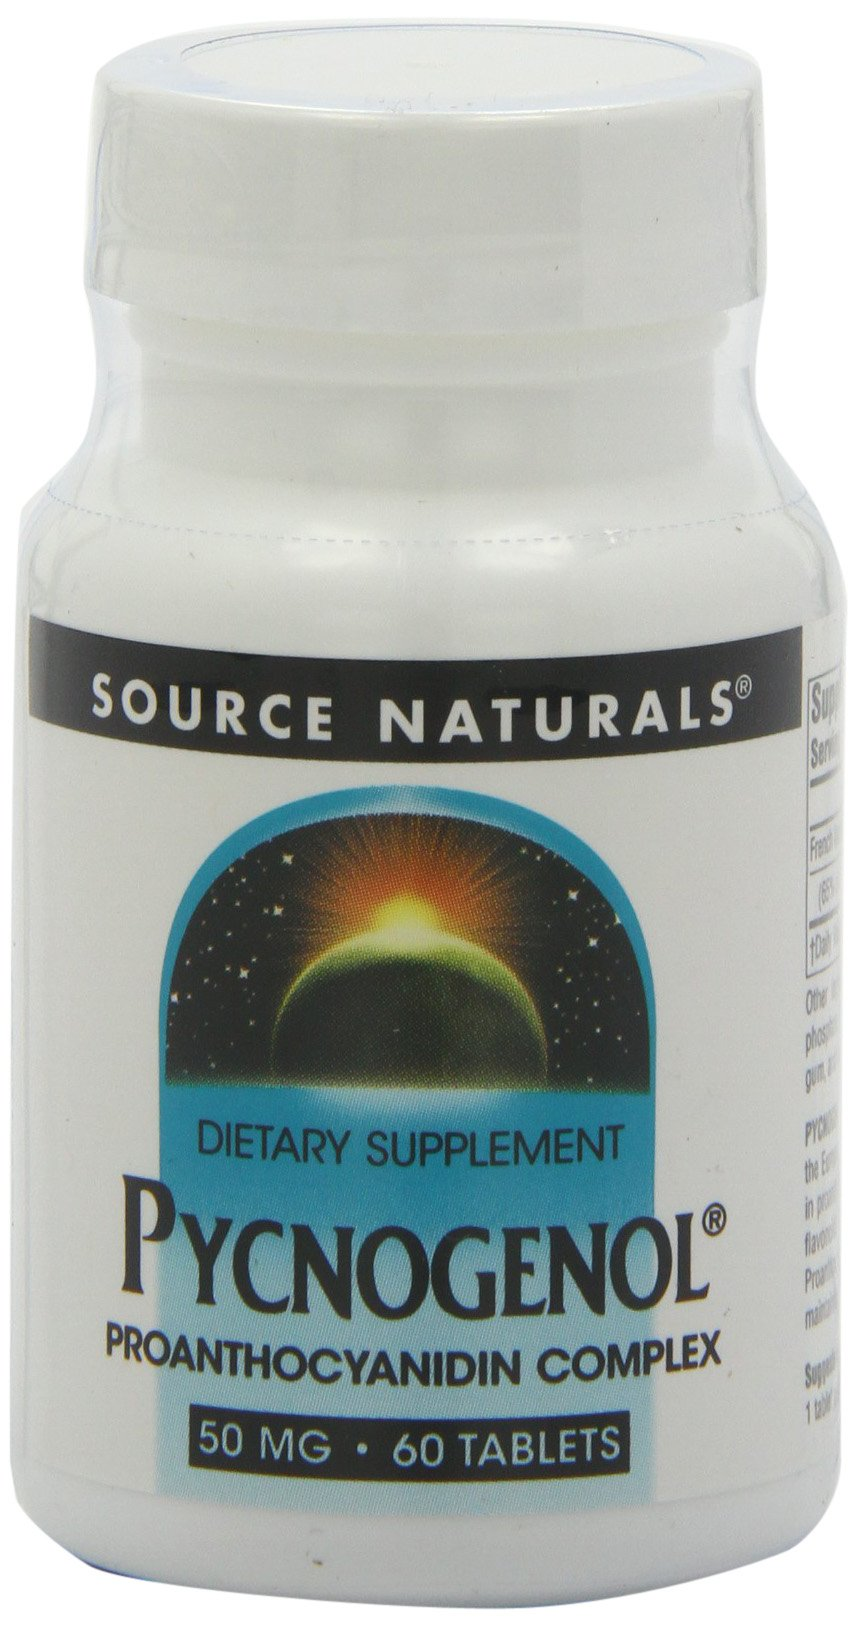 SOURCE NATURALS Pycnogenol 50 Mg Tablet, 60 Count by Source Naturals